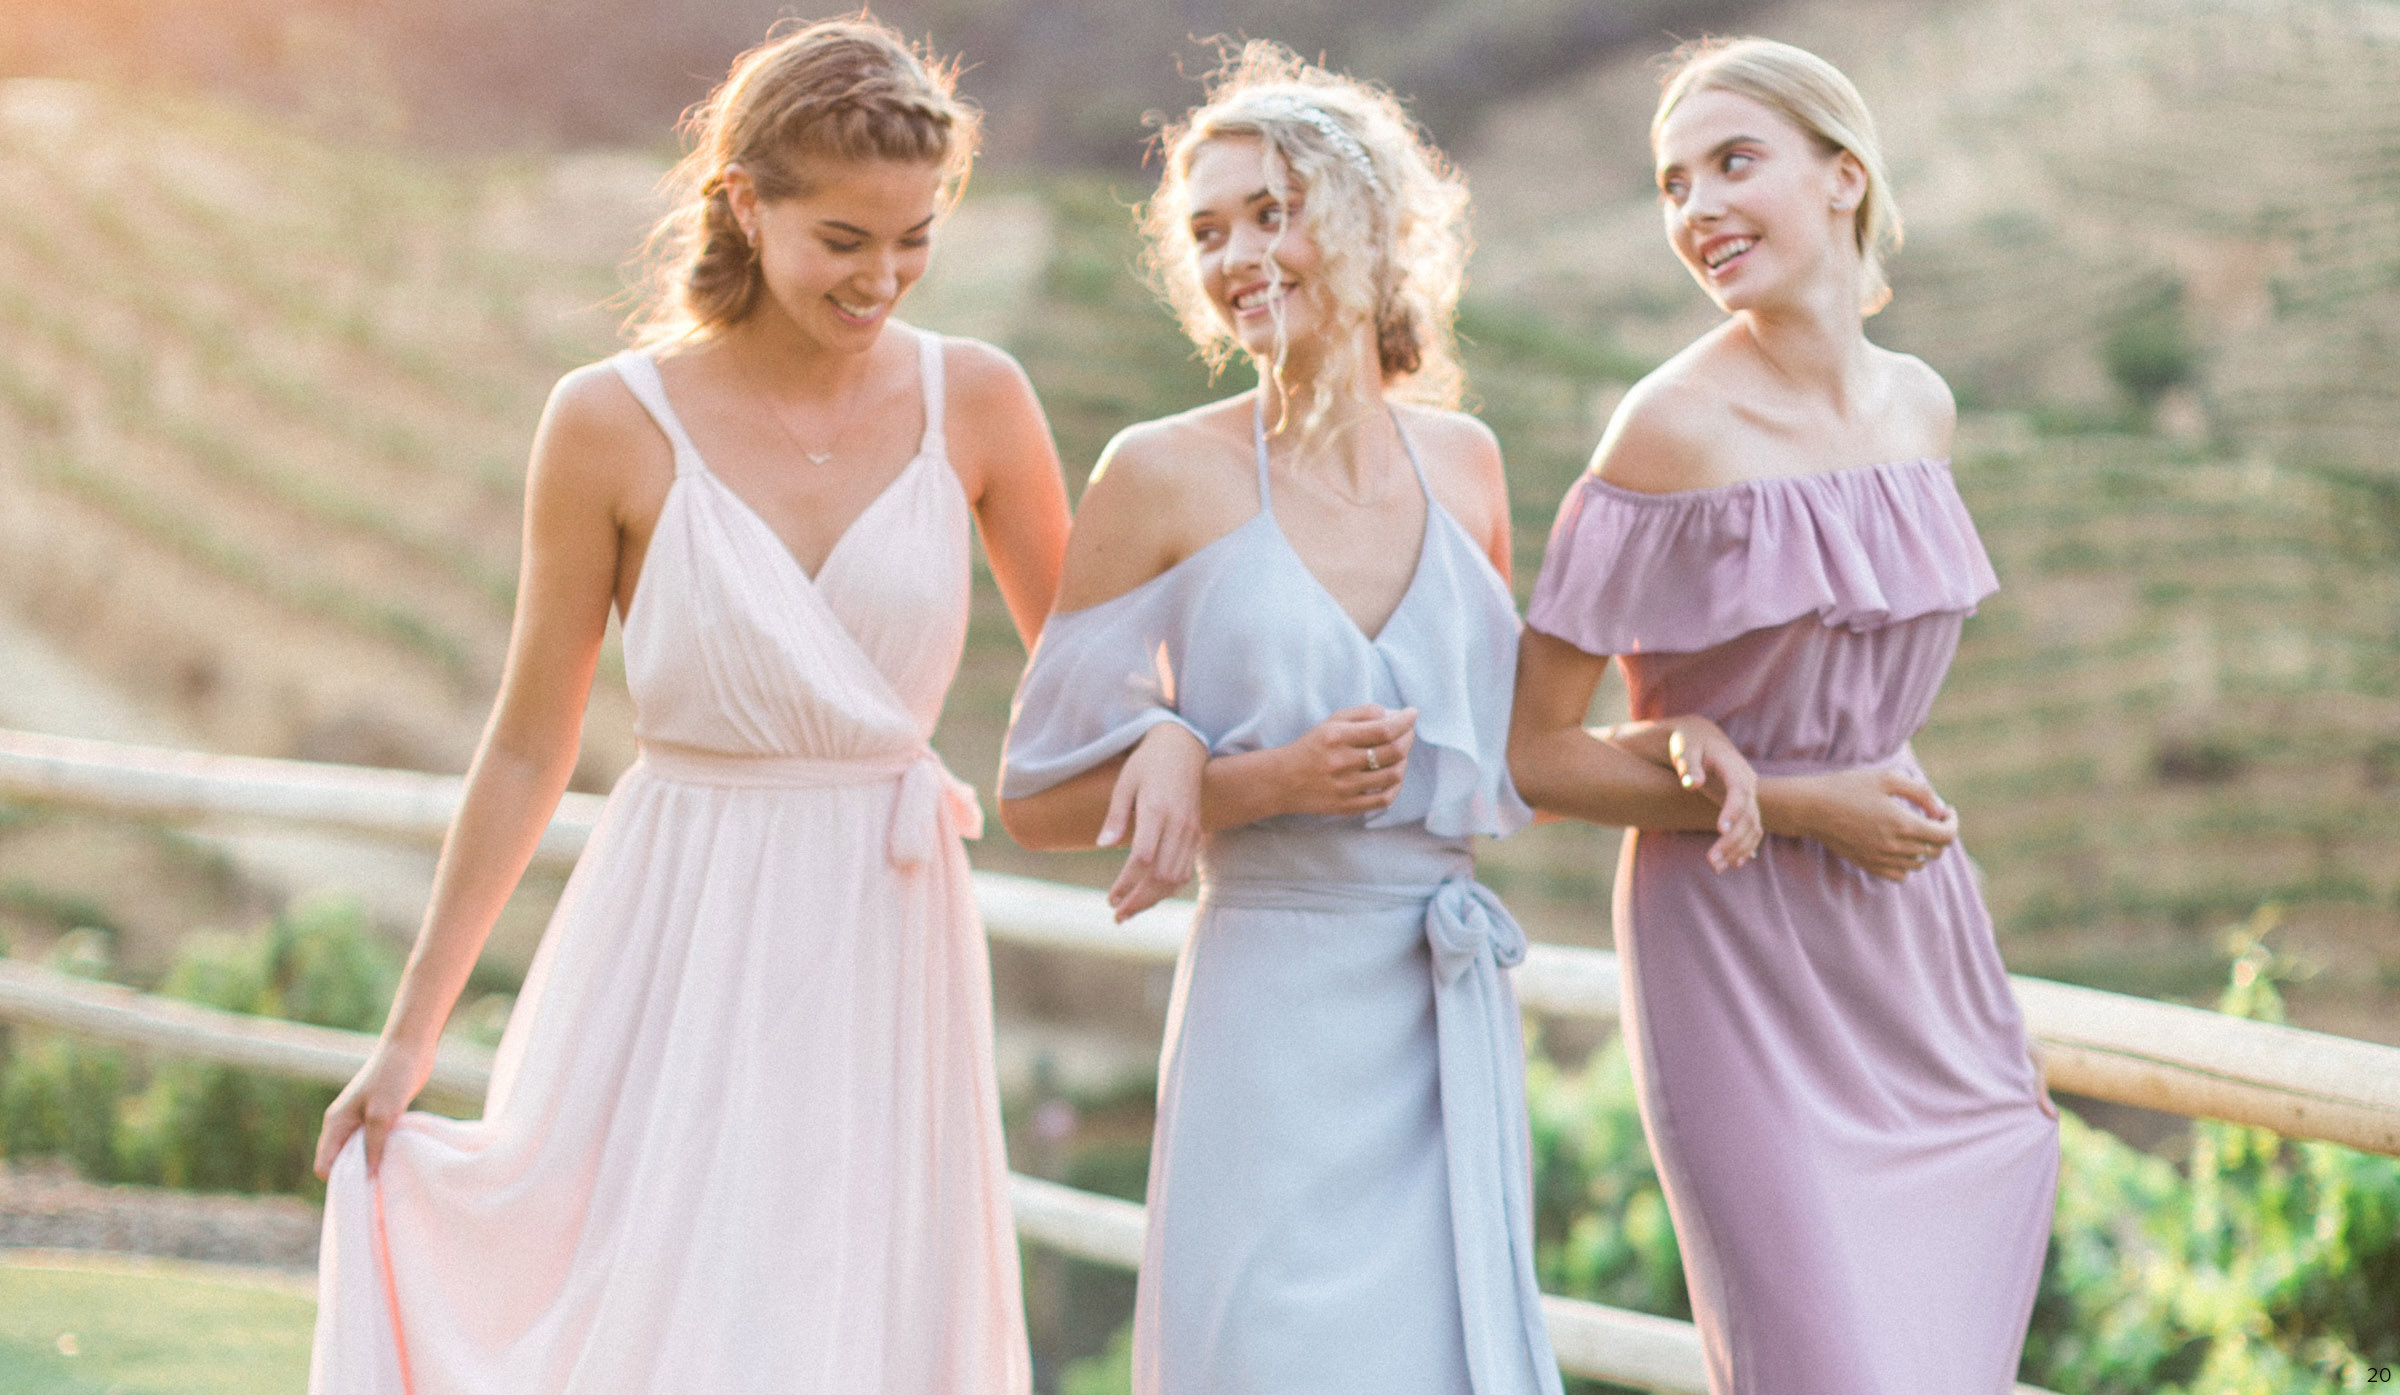 b4f64451da73 Where to Buy Bridesmaid Dresses Online - Vox